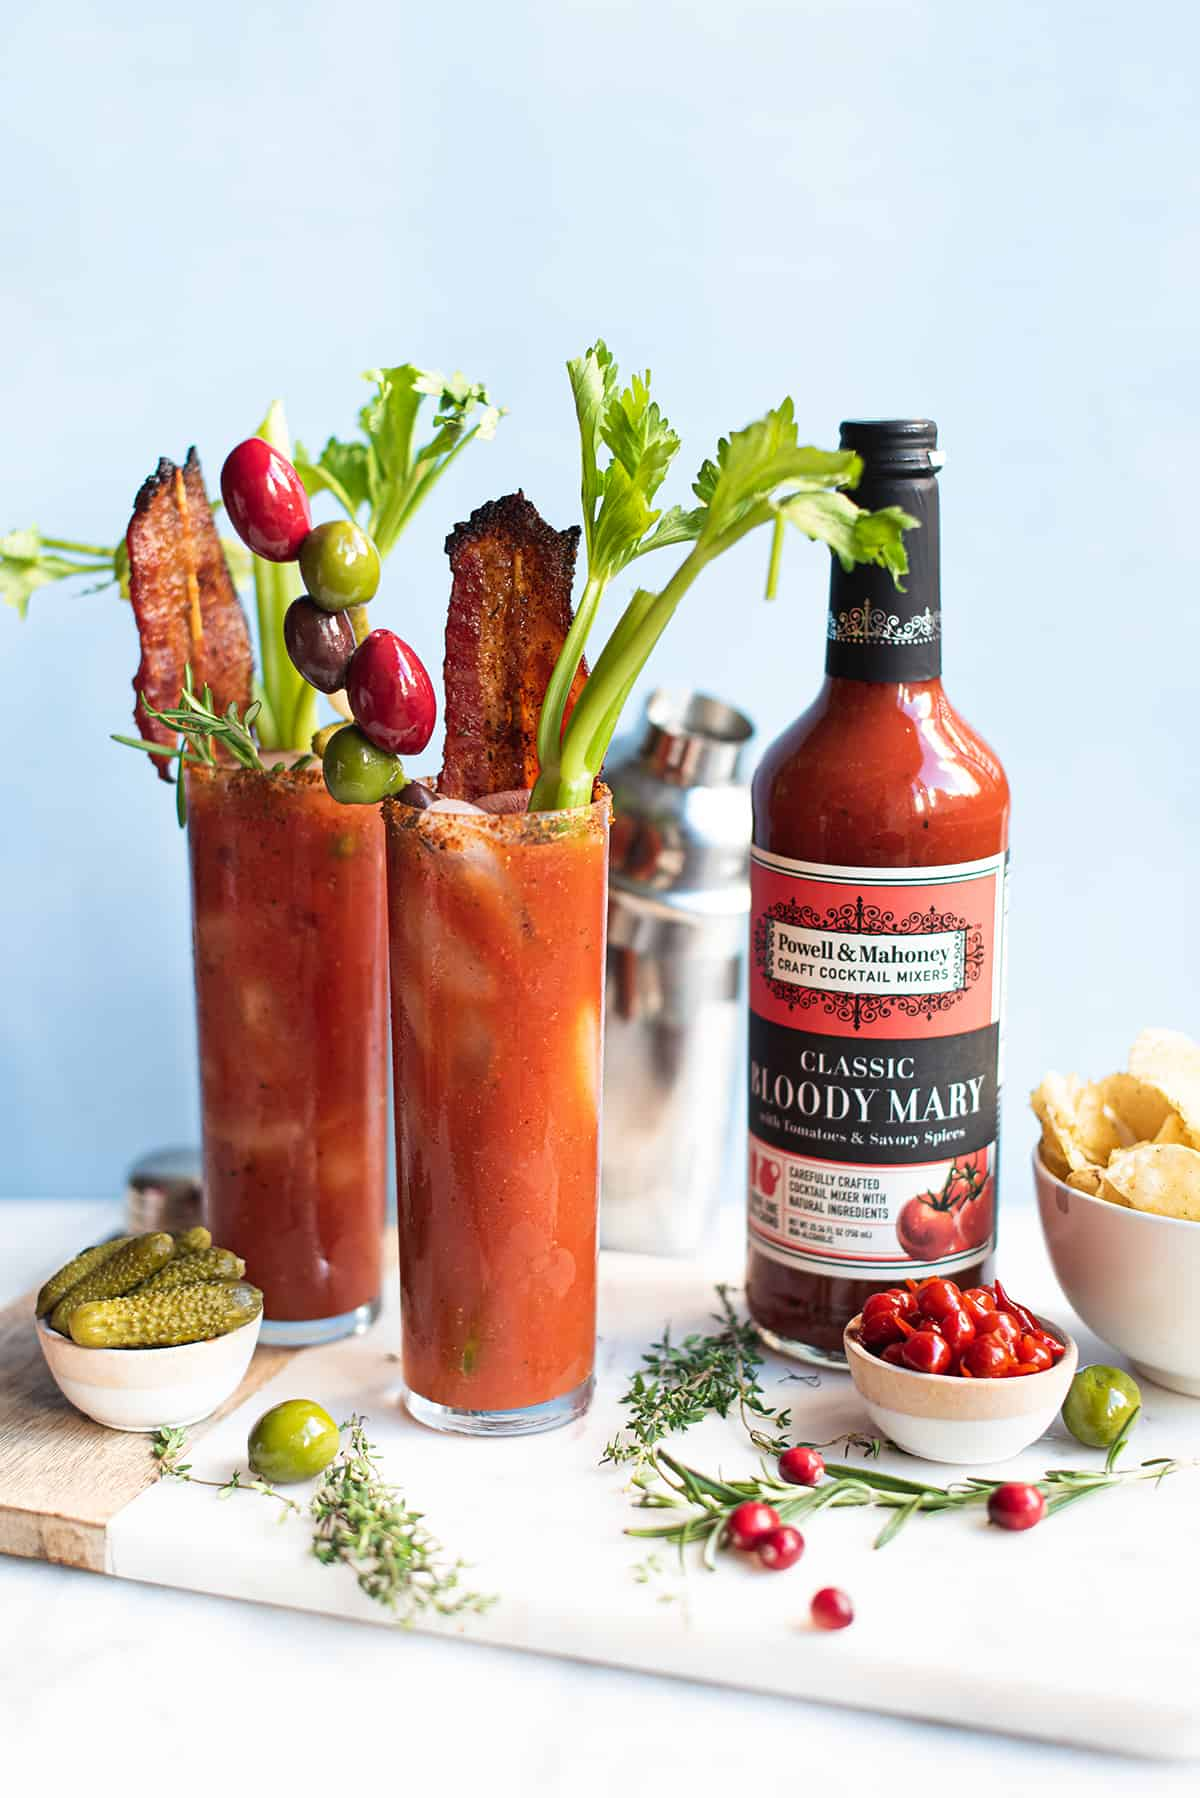 2 Bacon Bloody Marys in tall glasses, garnished with celery, olives + Bloody Mary mix on blue background